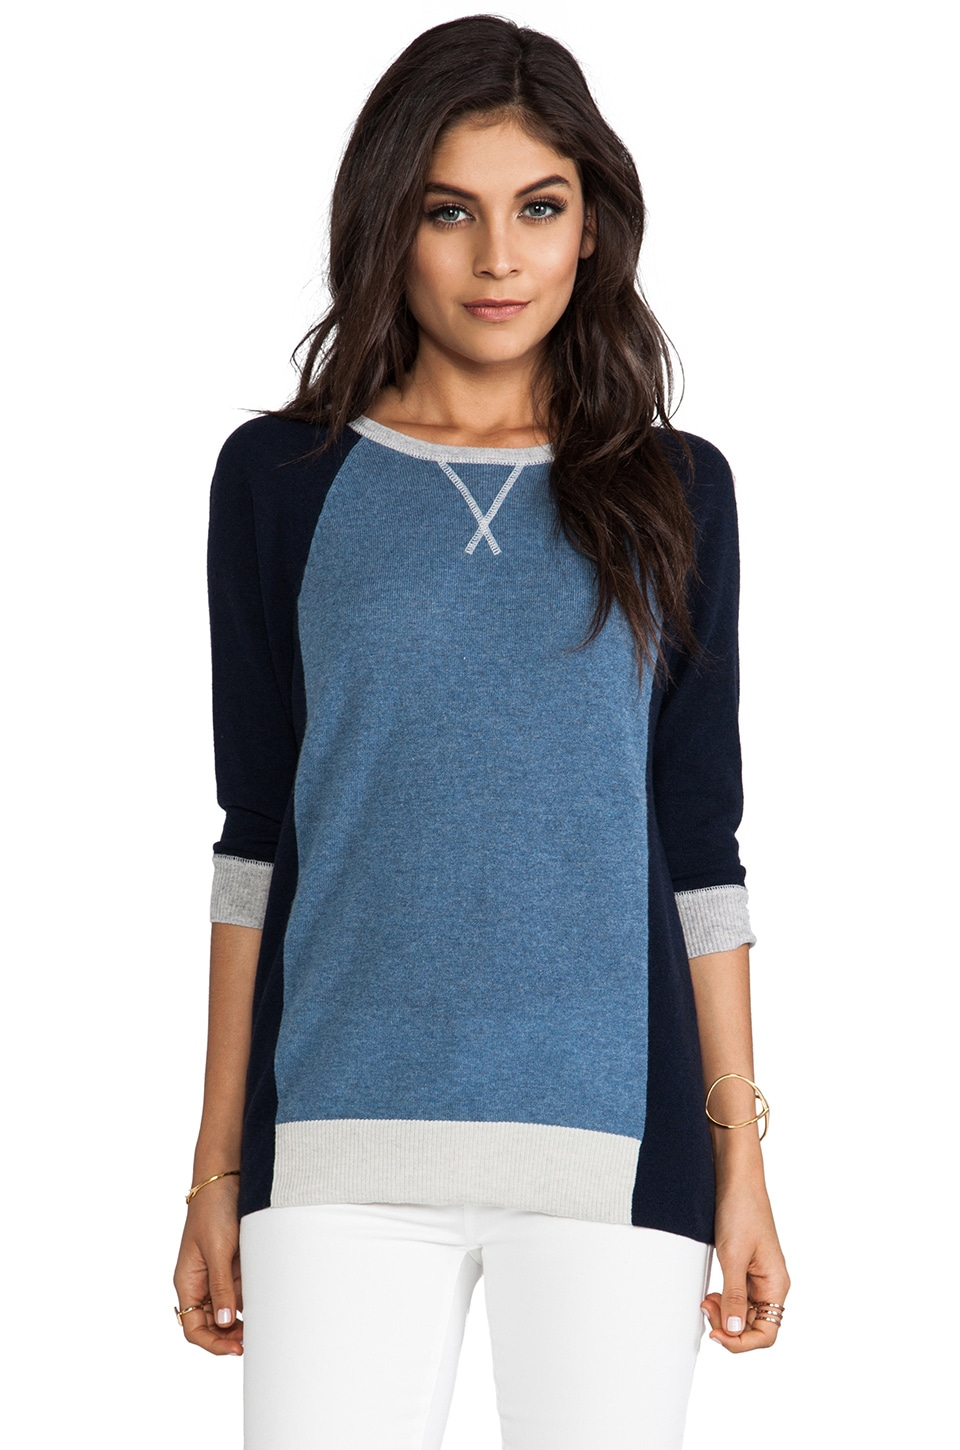 Autumn Cashmere Color Block Sweater in Navy Combo